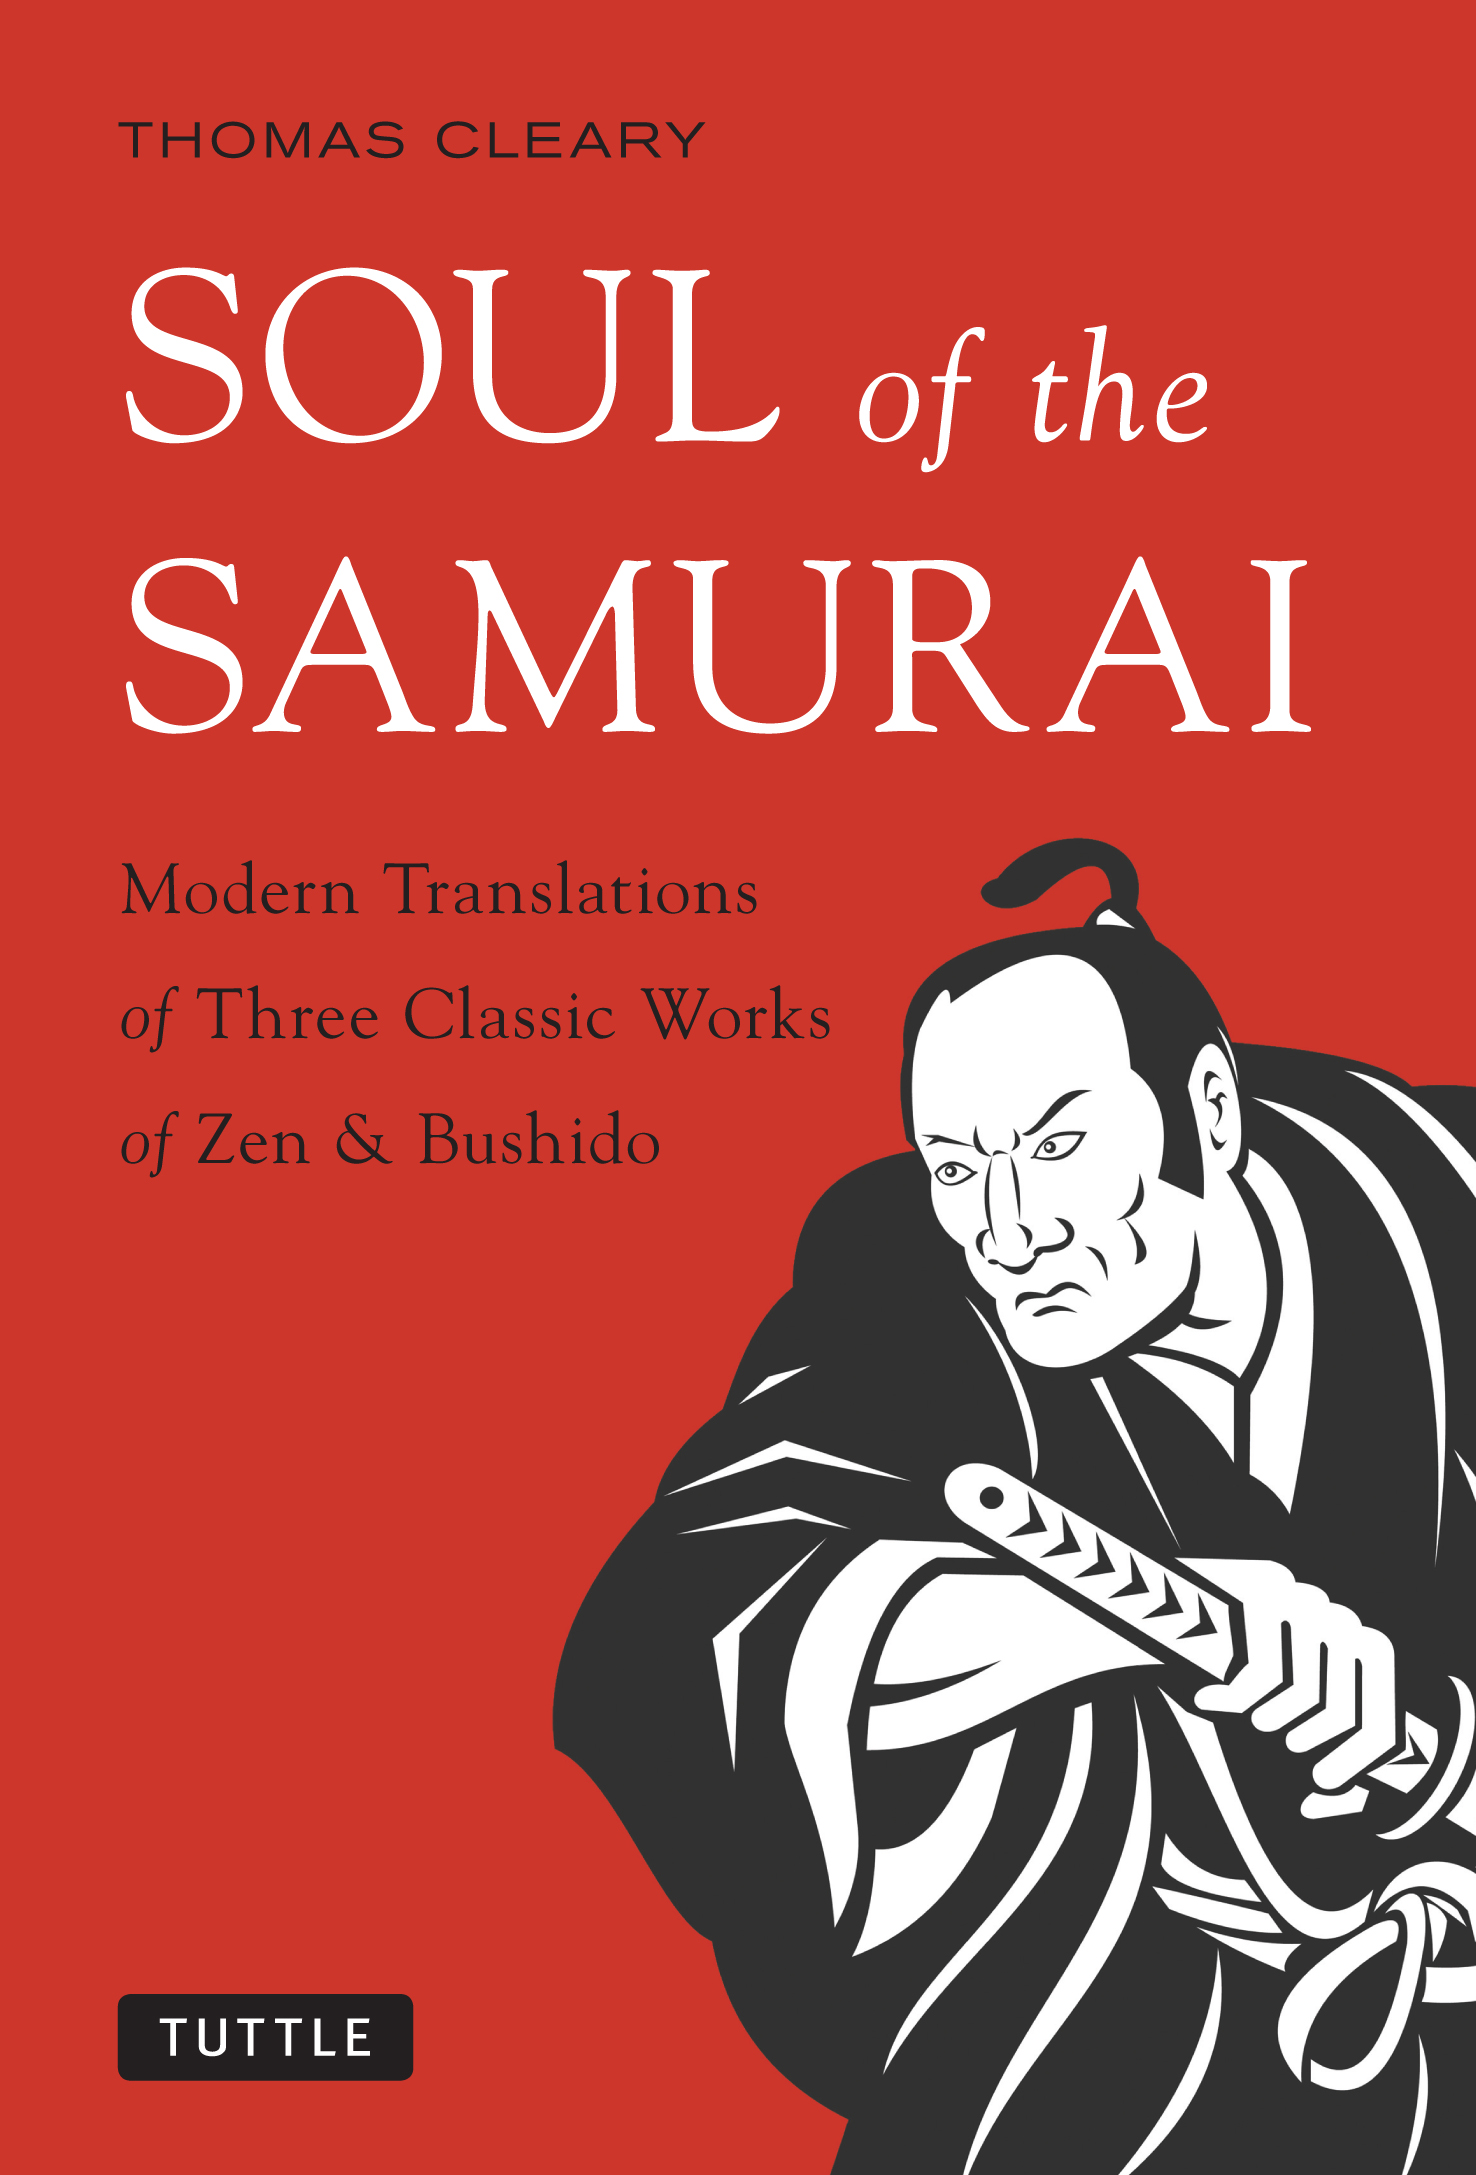 Soul-of-the-samurai-9784805312919_hr